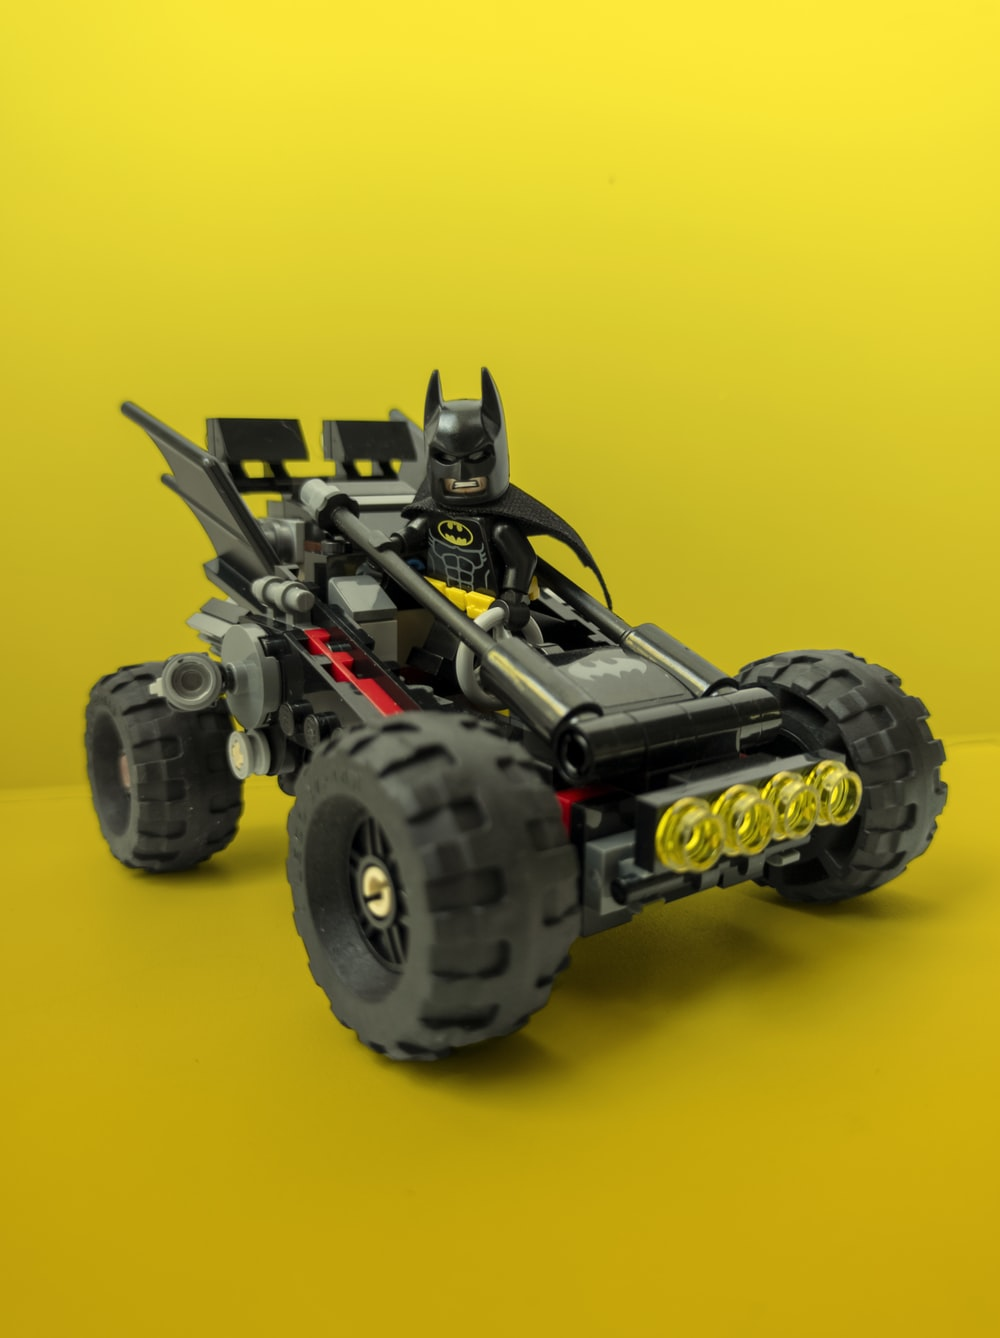 black and yellow monster truck toy